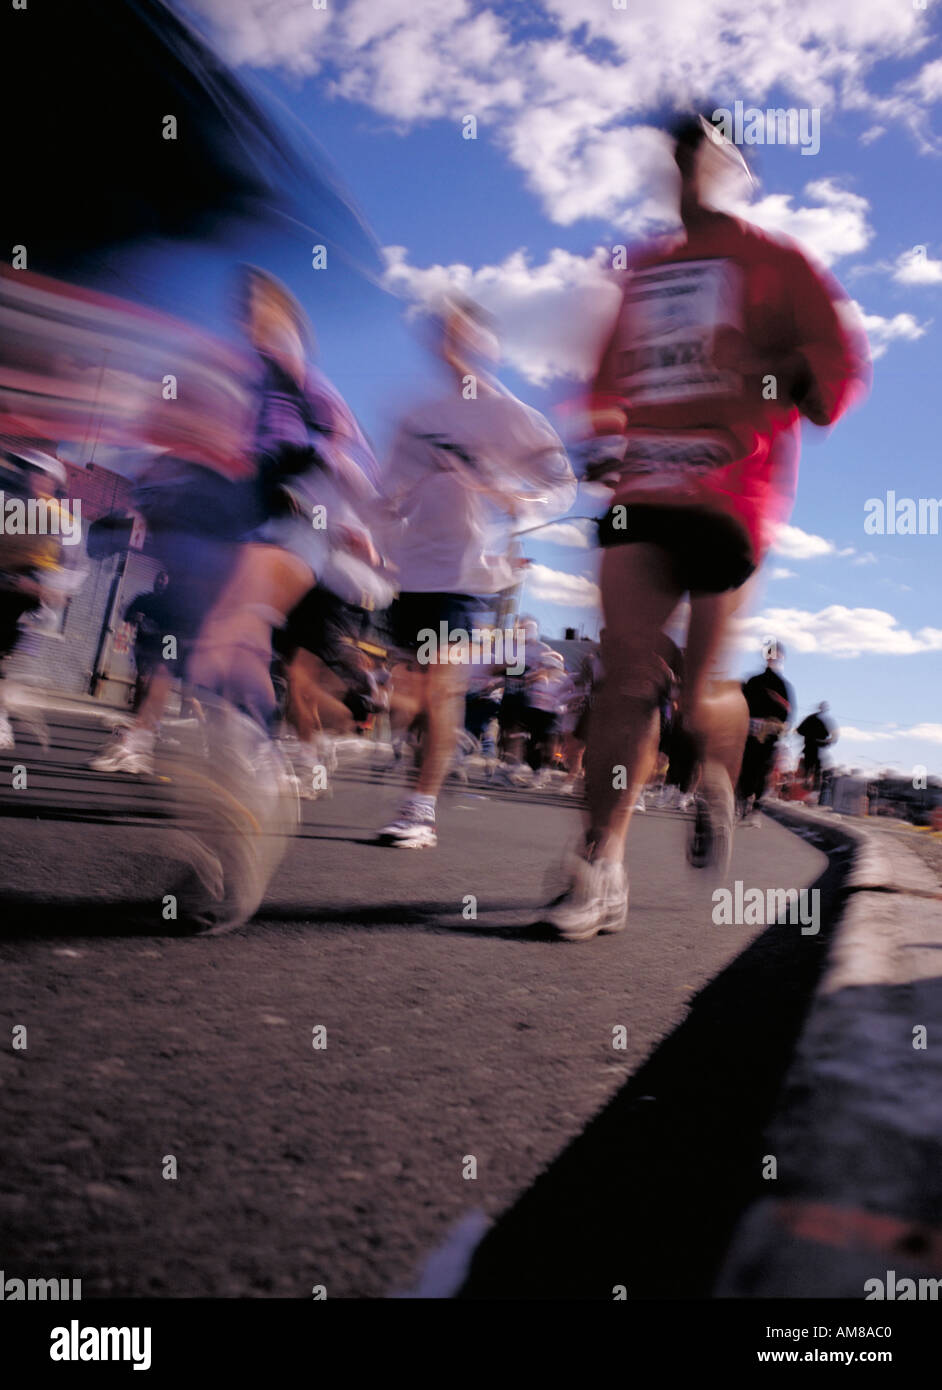 People running marathon blurred motion distorted - Stock Image